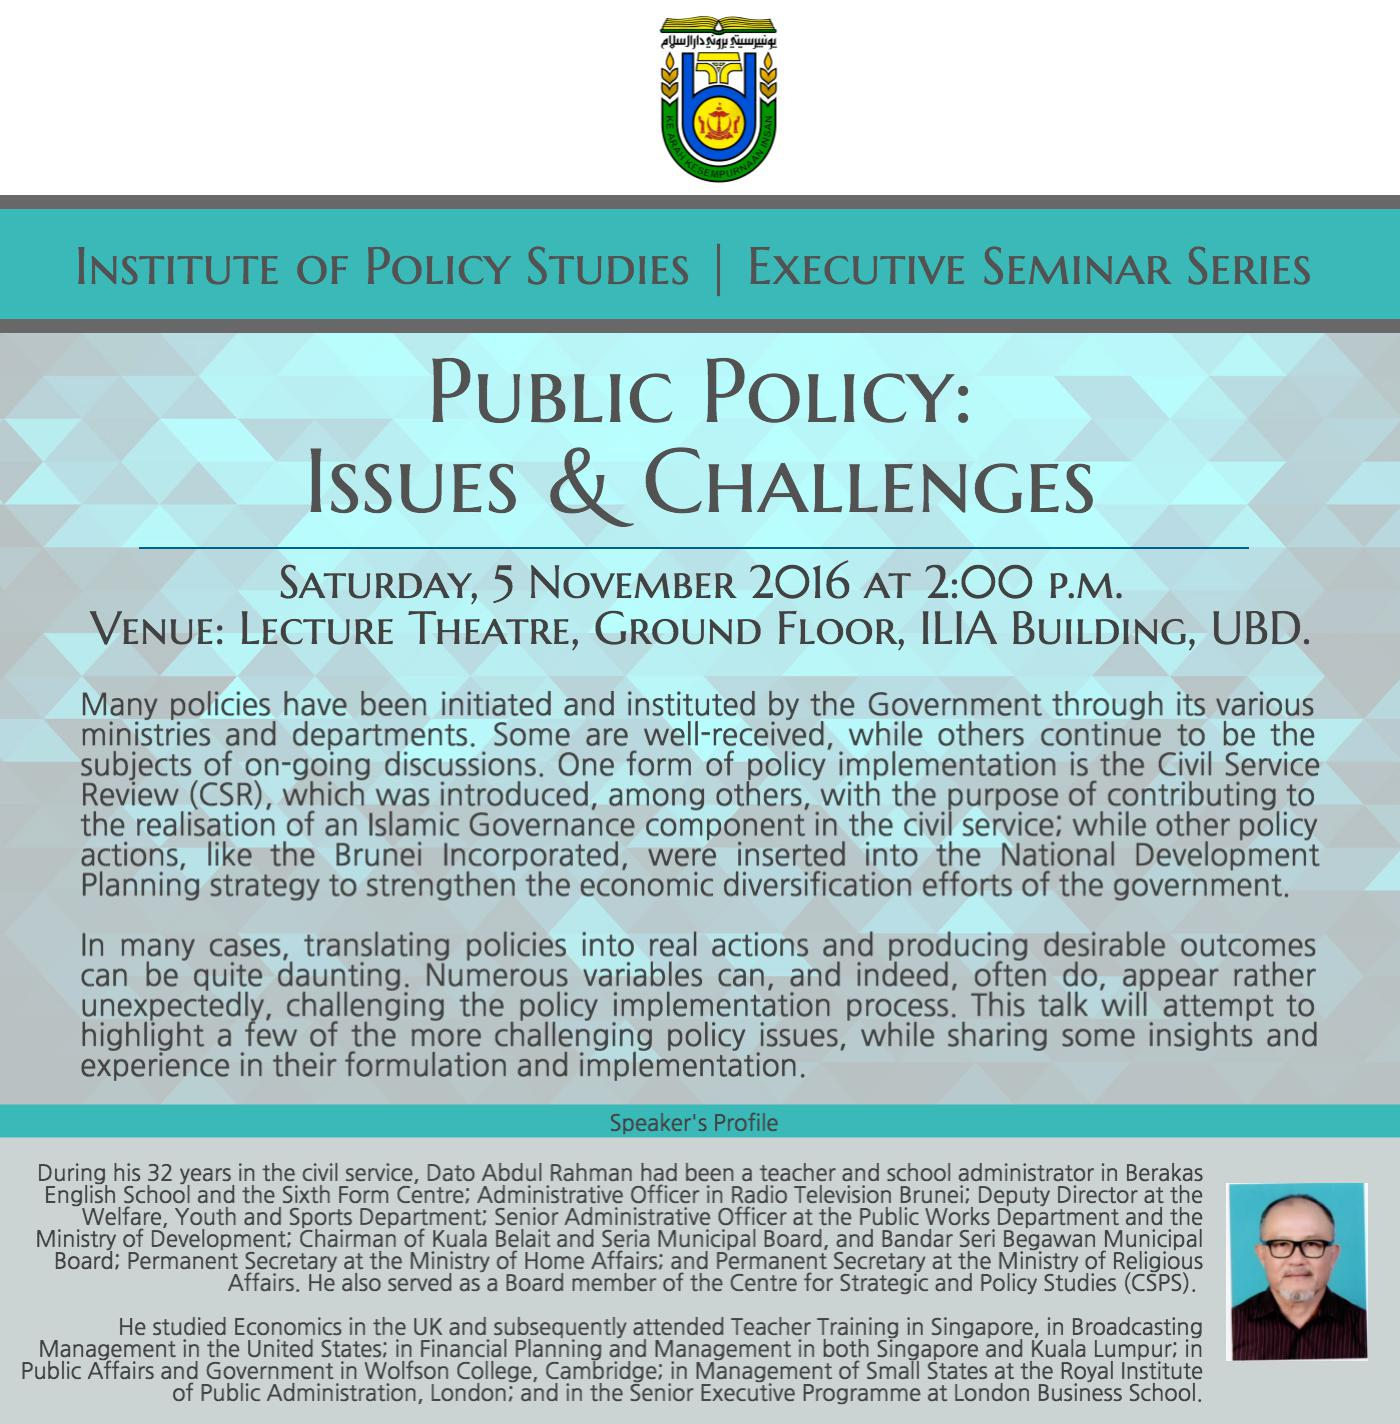 Public Policy: Issues & Challenges